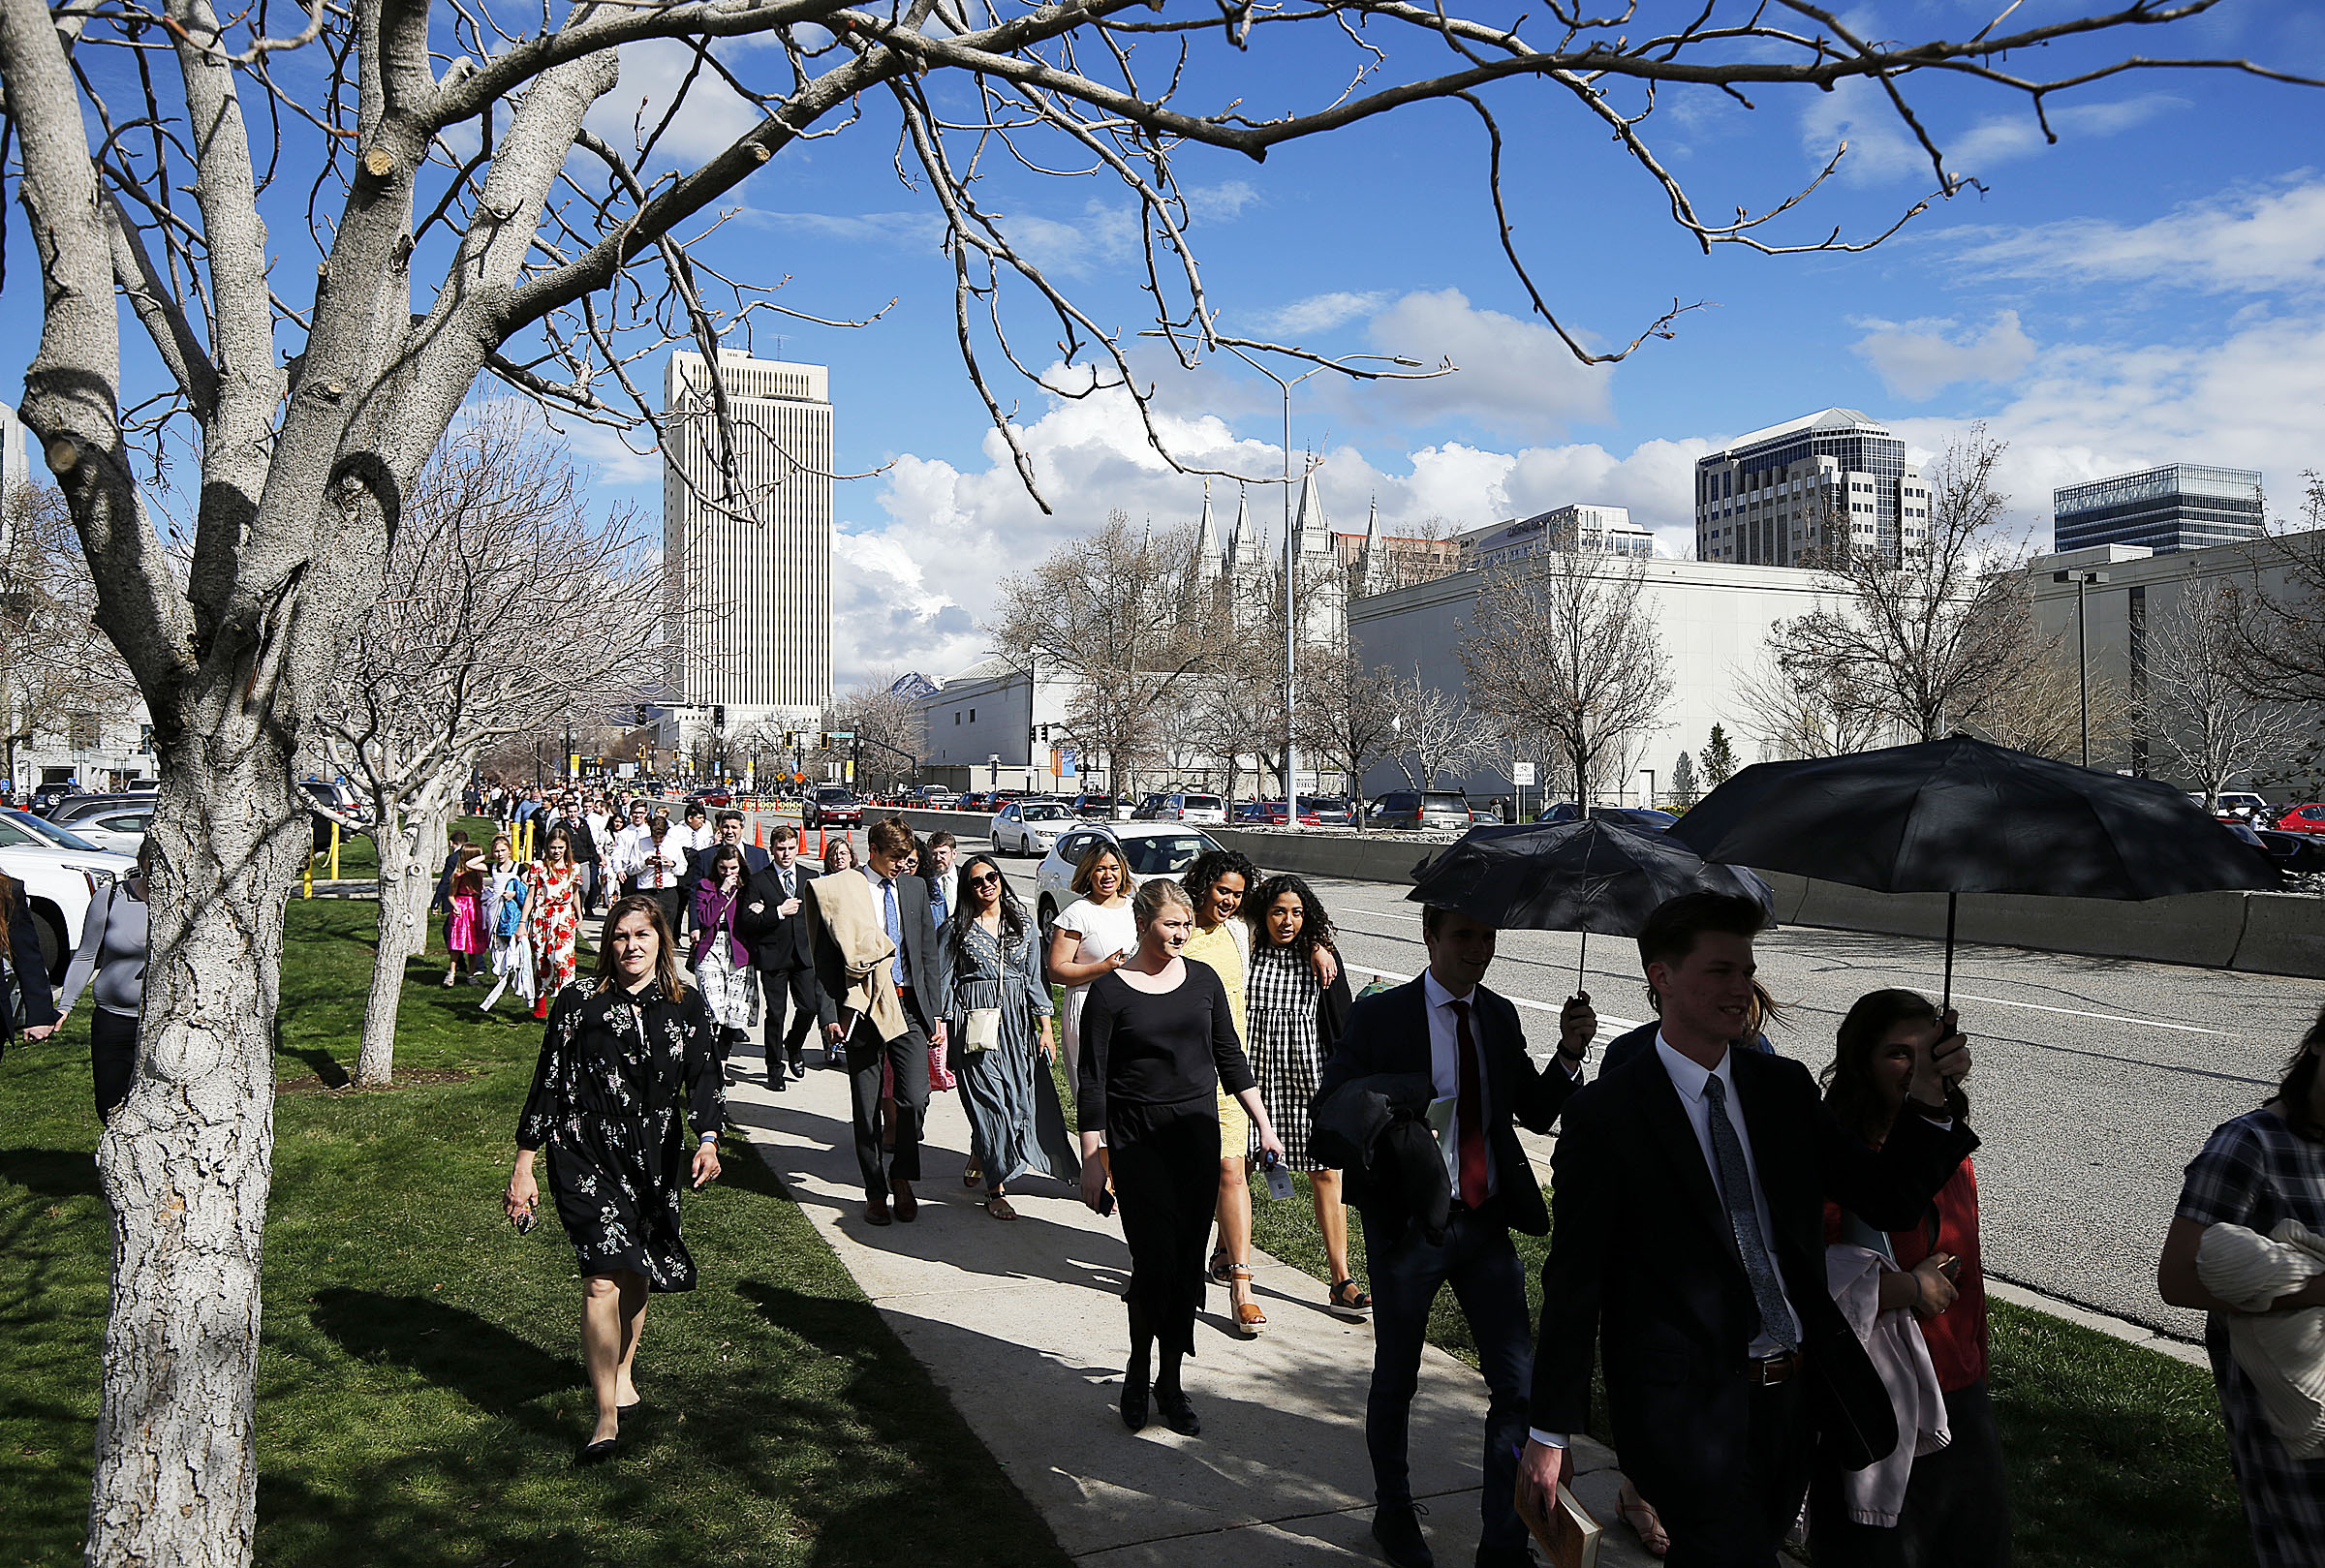 Conferencegoers walk from the Conference Center following the afternoon session of general conference of The Church of Jesus Christ of Latter-day Saints in Salt Lake City on Saturday, April 6, 2019.